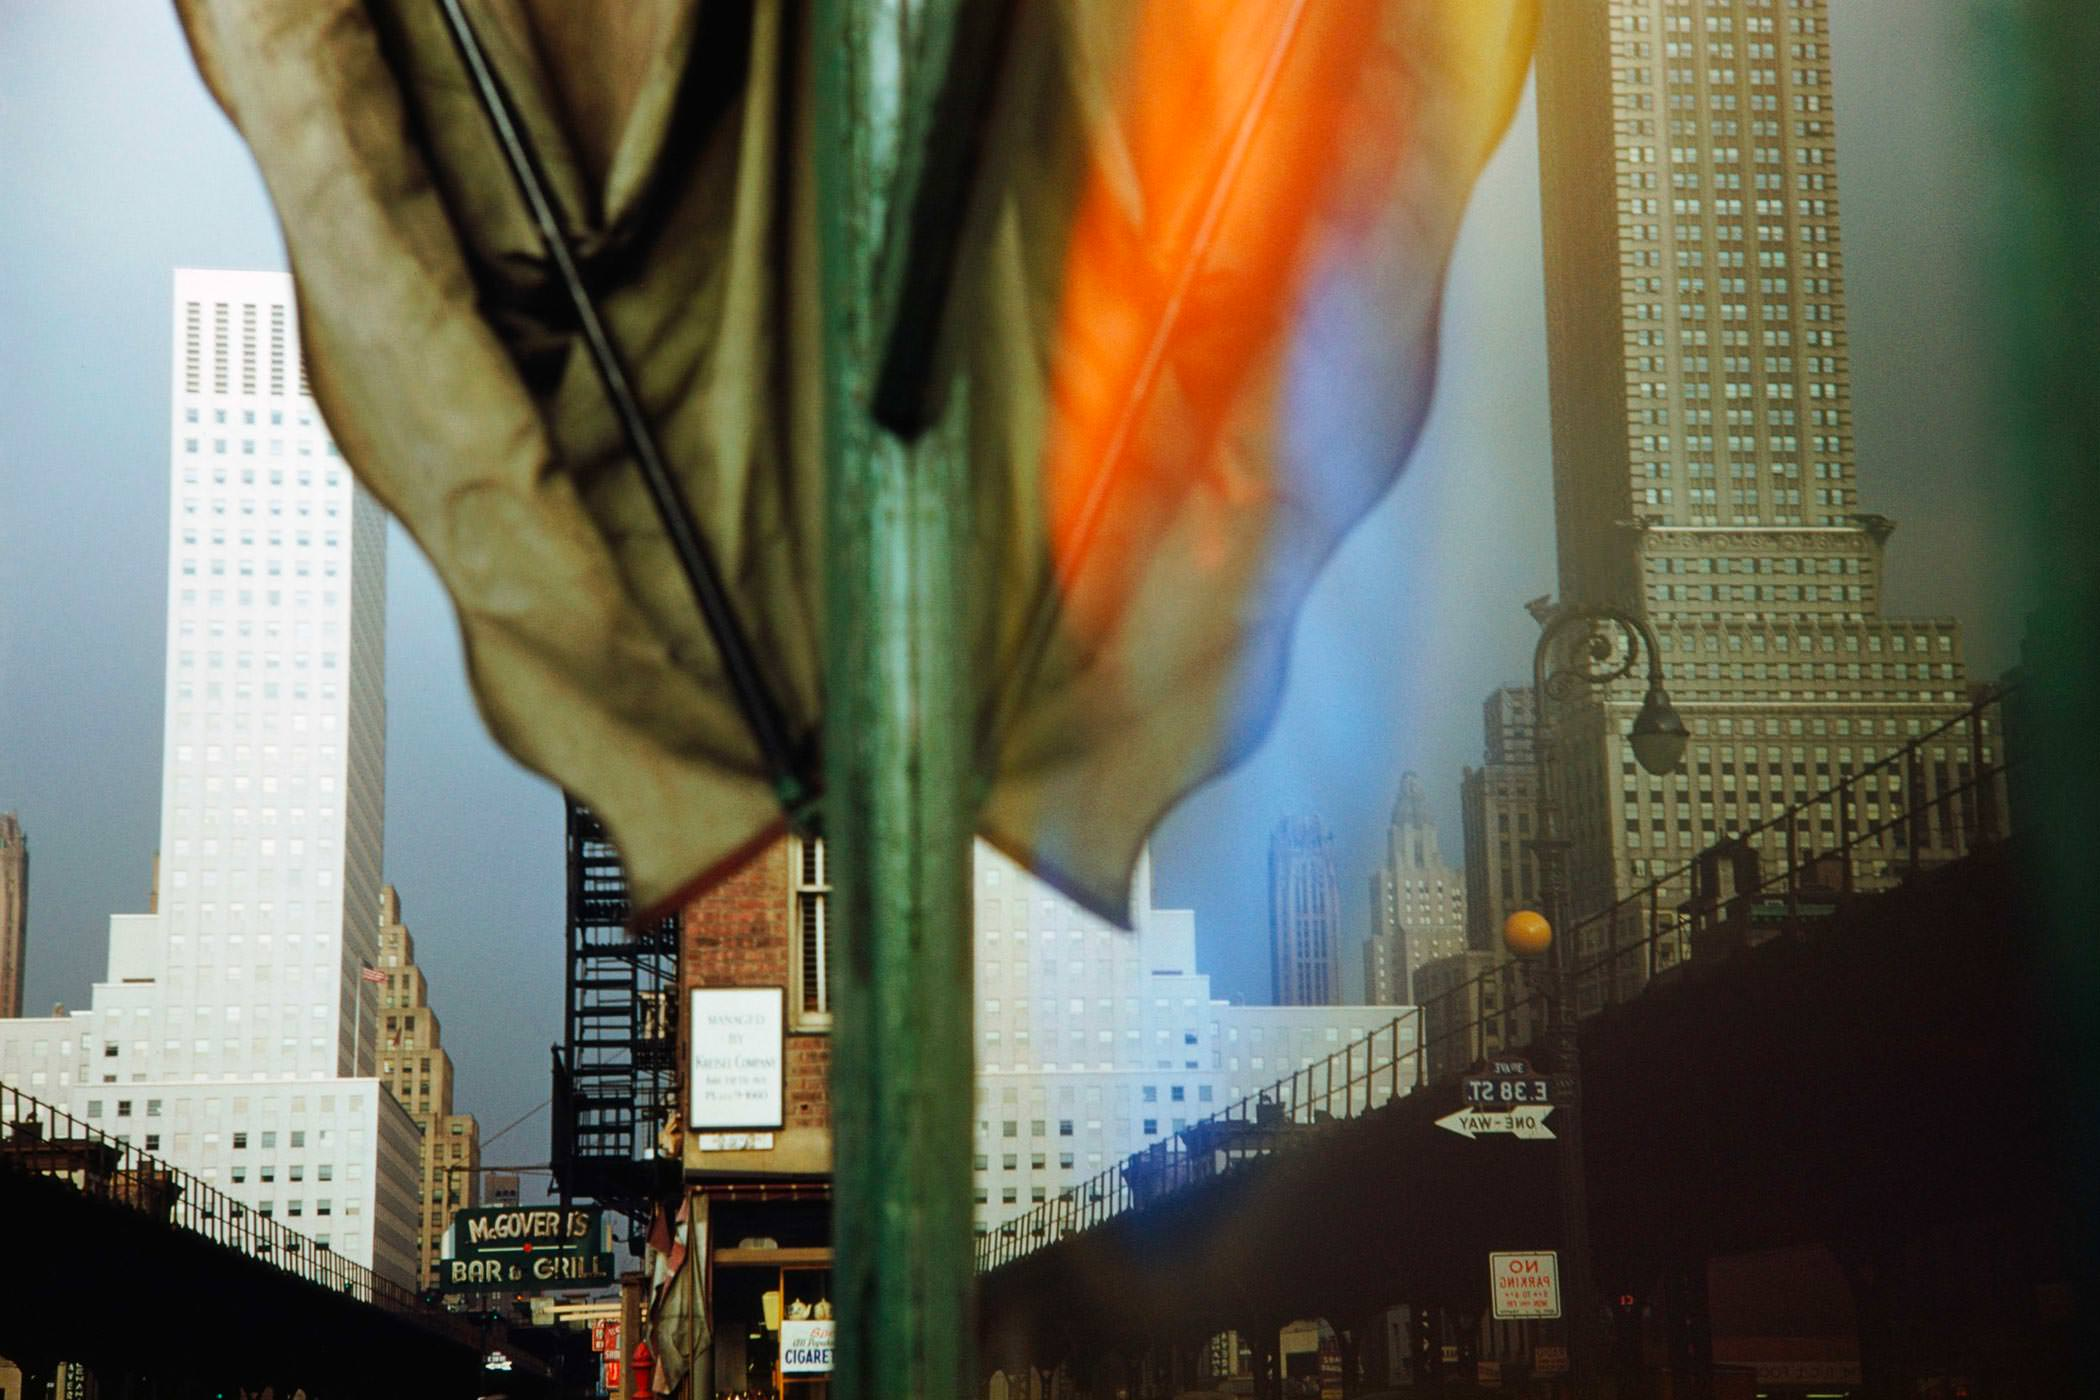 Ernst Haas Photographie, 3rd Avenue Reflection, New York City, USA, 1952